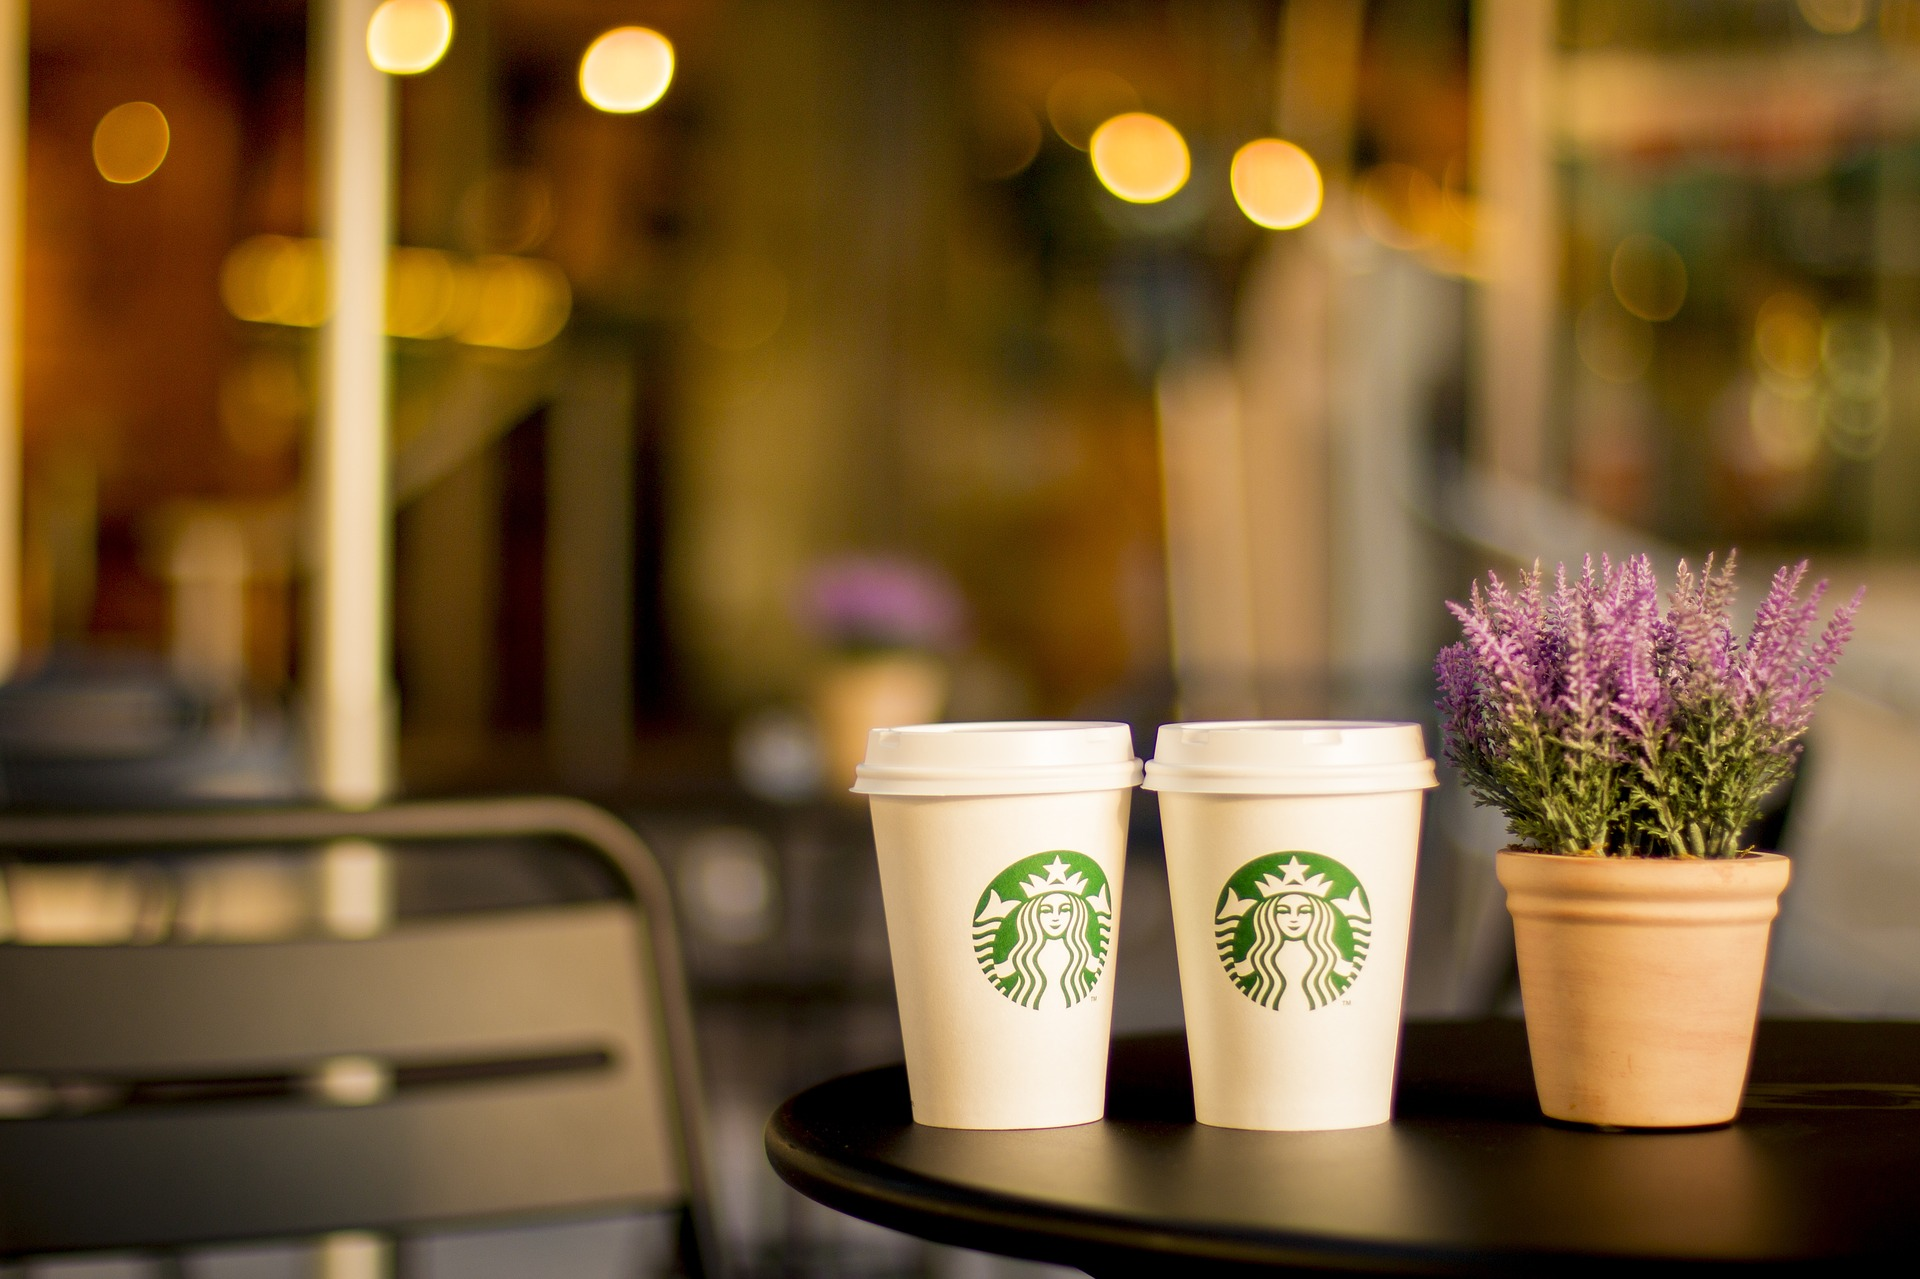 Is that Starbucks worth another decade of working?